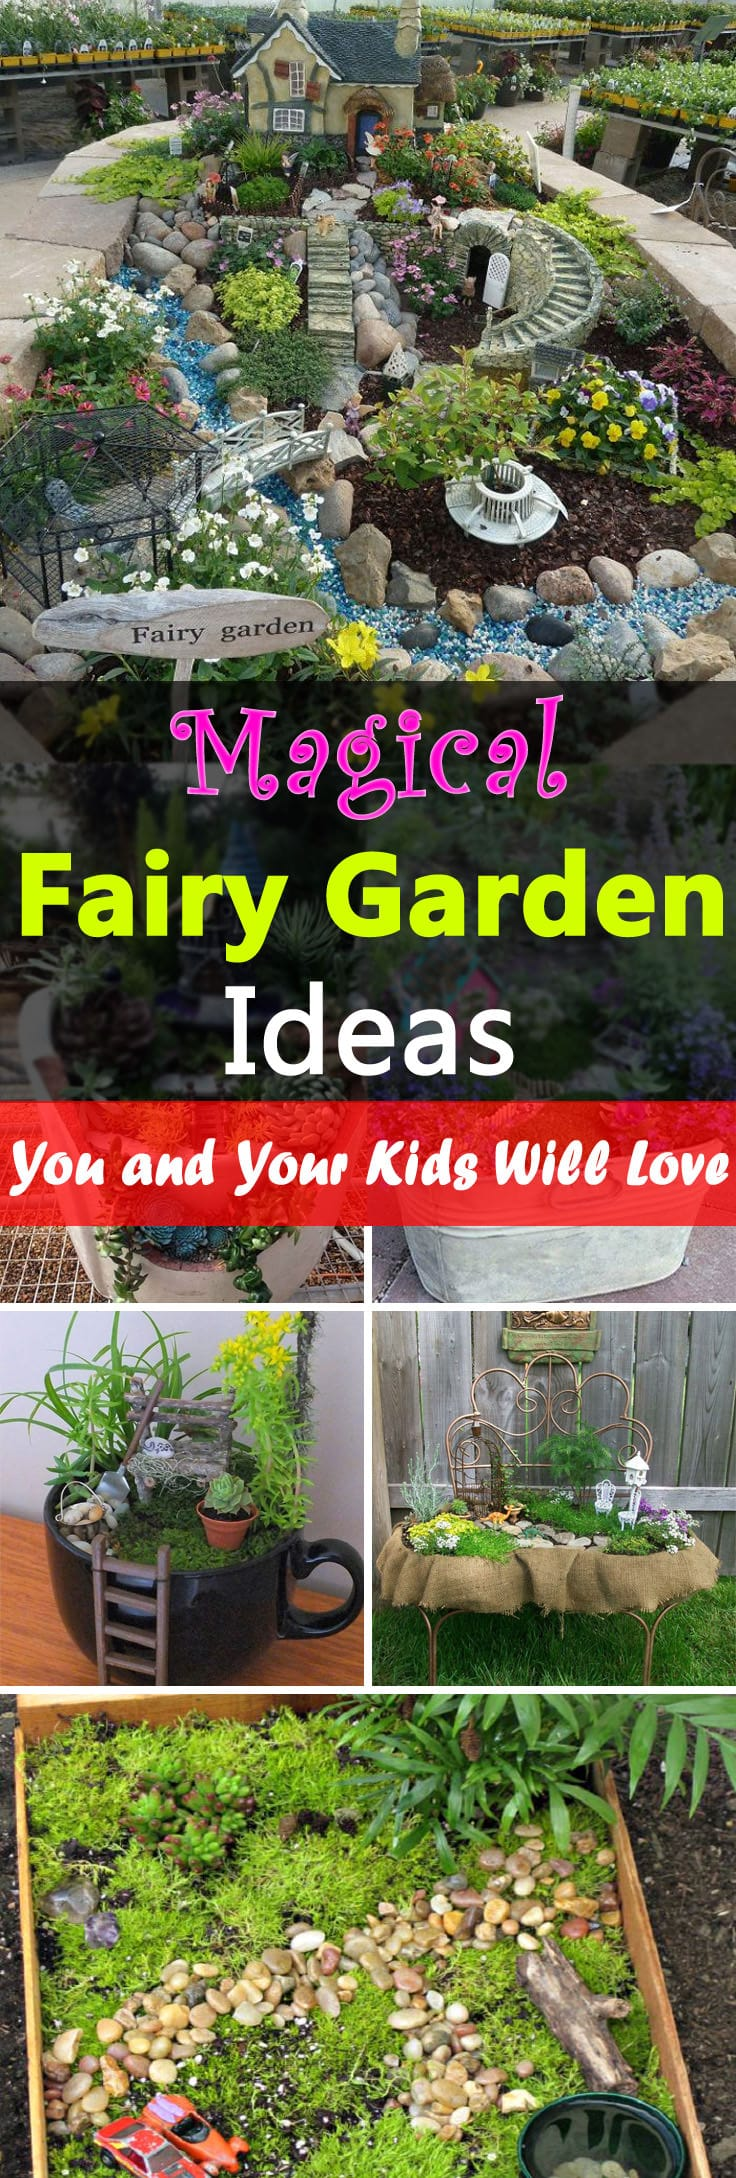 Magical Fairy Garden Ideas You & Your Kids Will Love ... on Magical Backyard Ideas id=14910